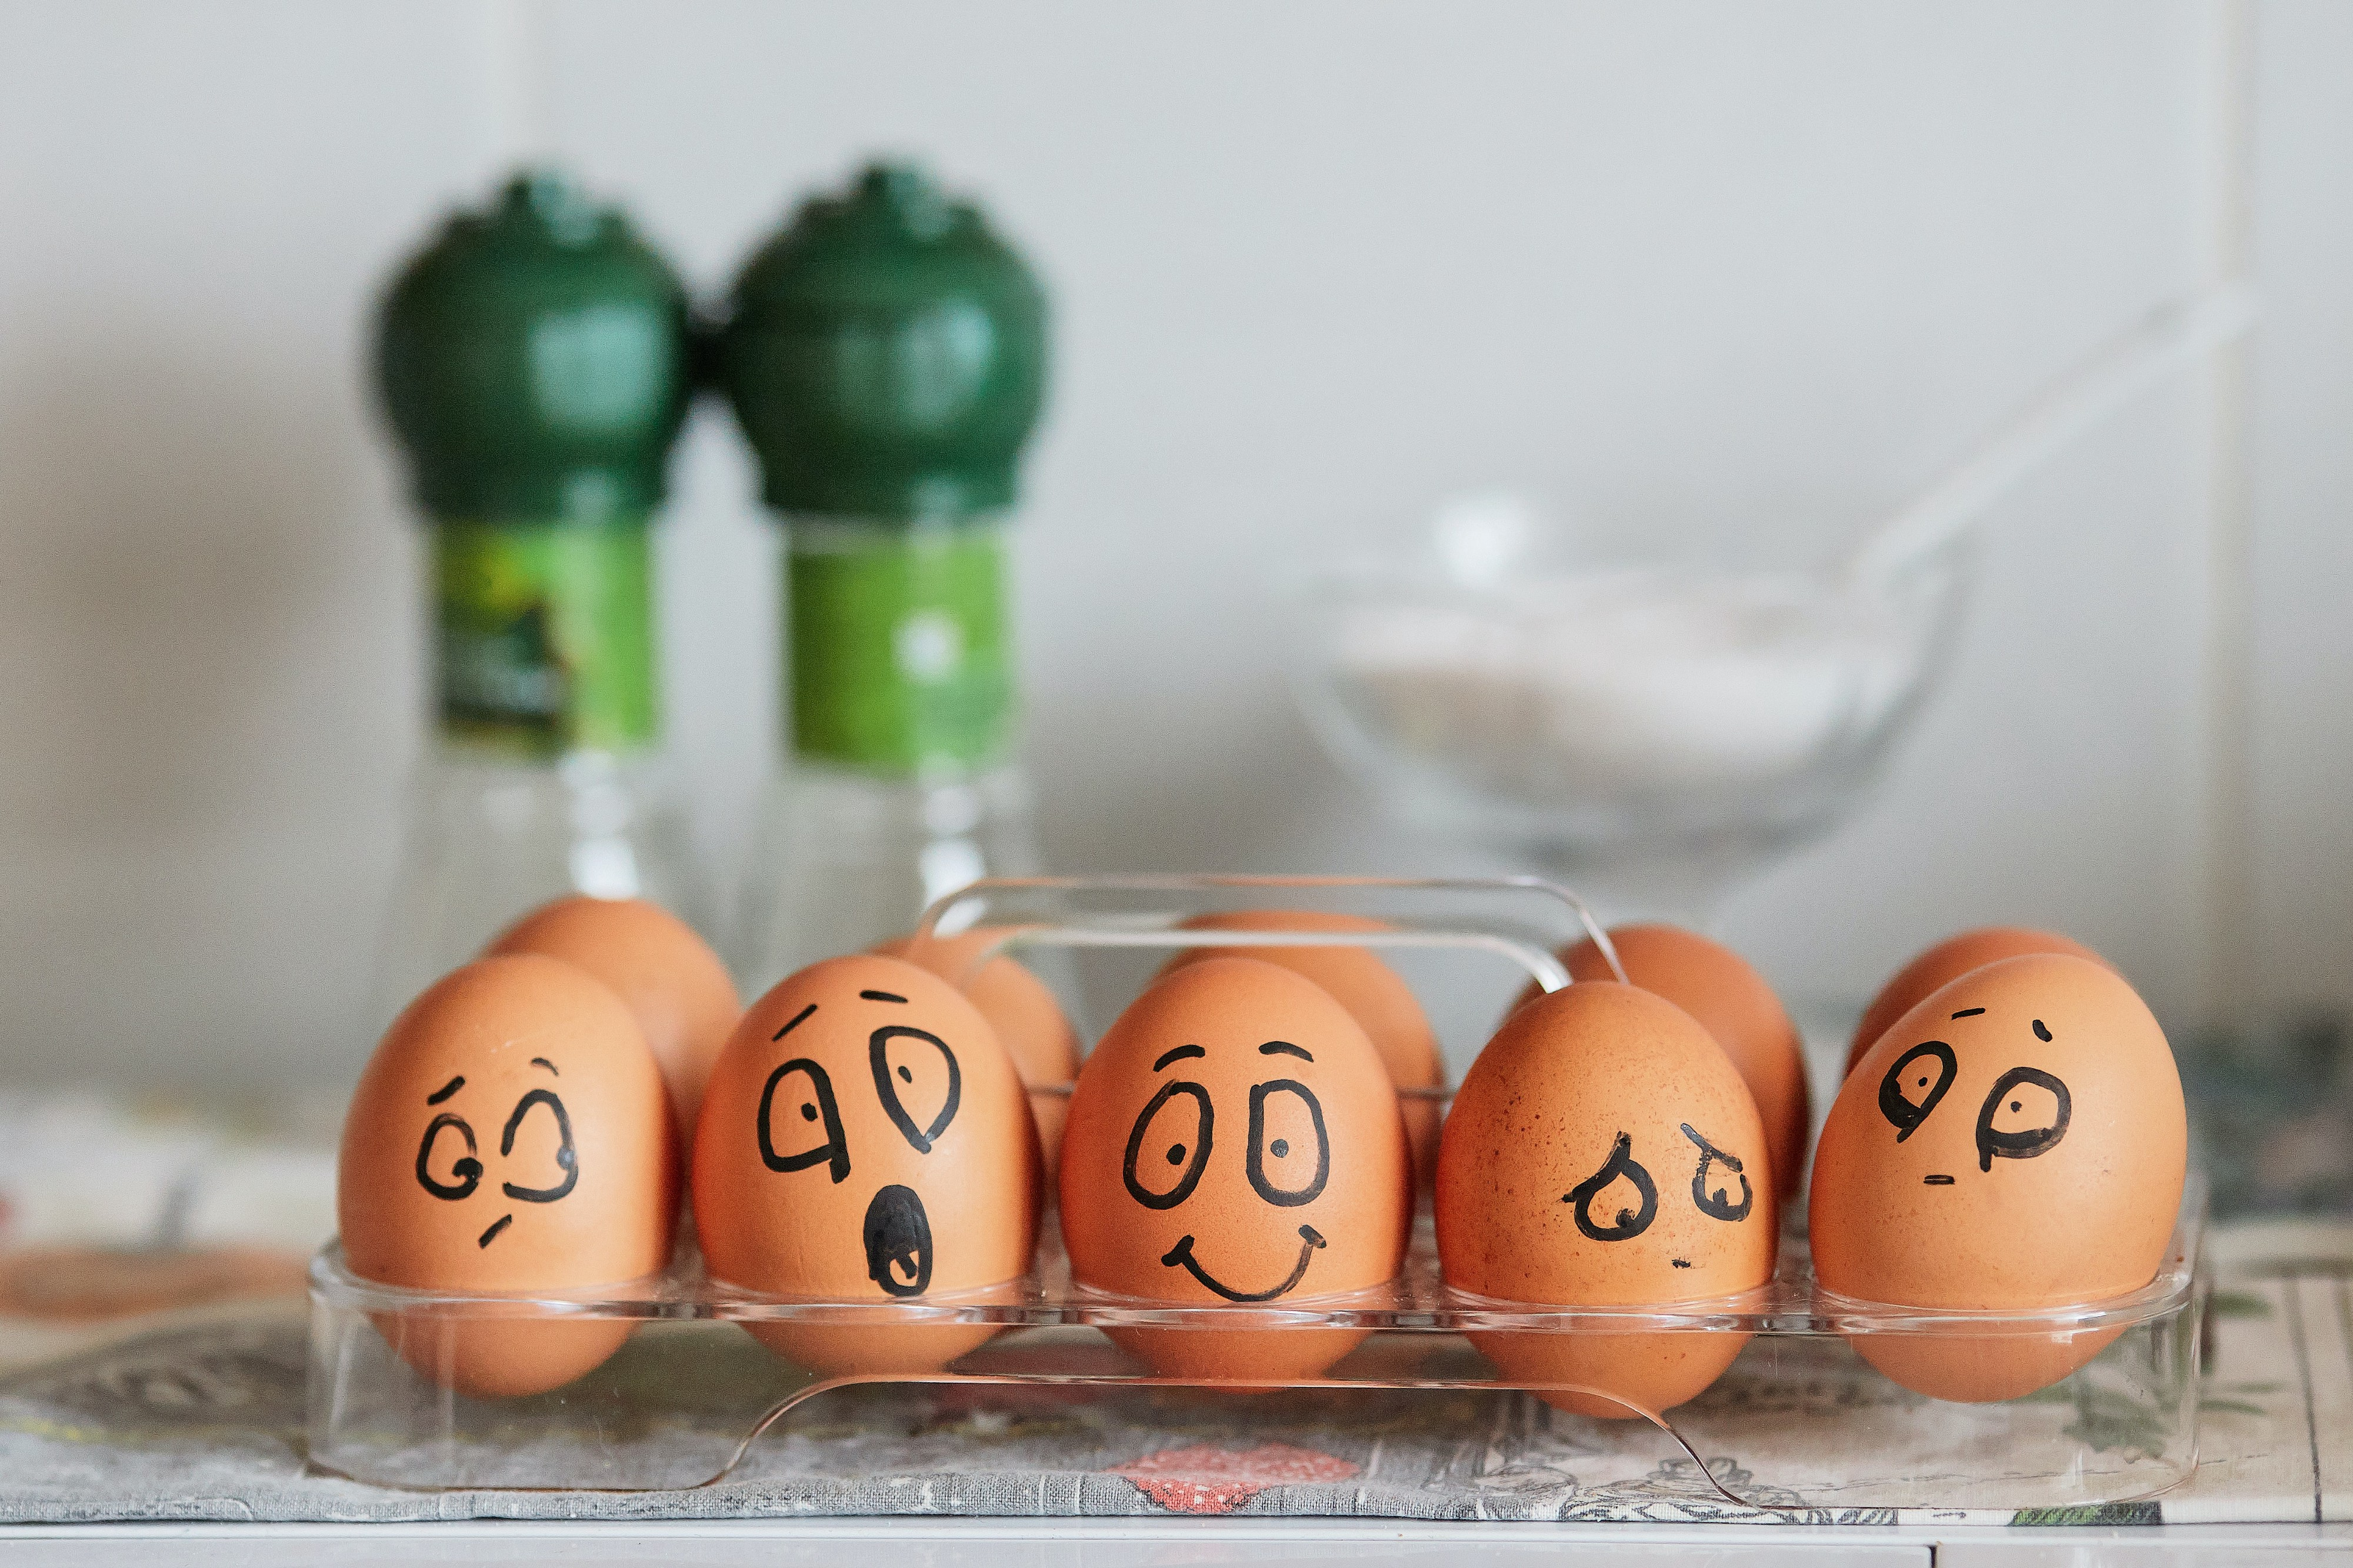 Eggs with drawn-on faces displaying different emotions. From left to right: indifference, surprise, happiness, sadness, fear.